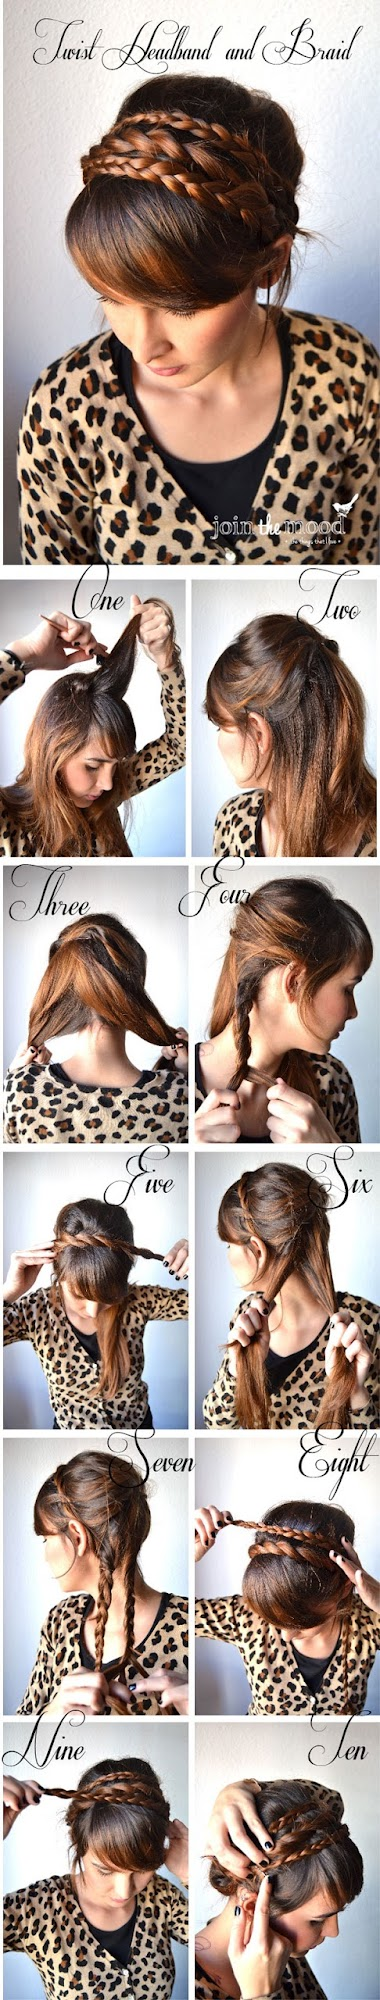 Step 2: Divide the section of hair into two, and do a rope twist, basically just twisting the two sections of hair together, in an upwards direction all the way to the end. Step 3: Once you reach the end, lift it up and sit it over the top of your head, like a headband.